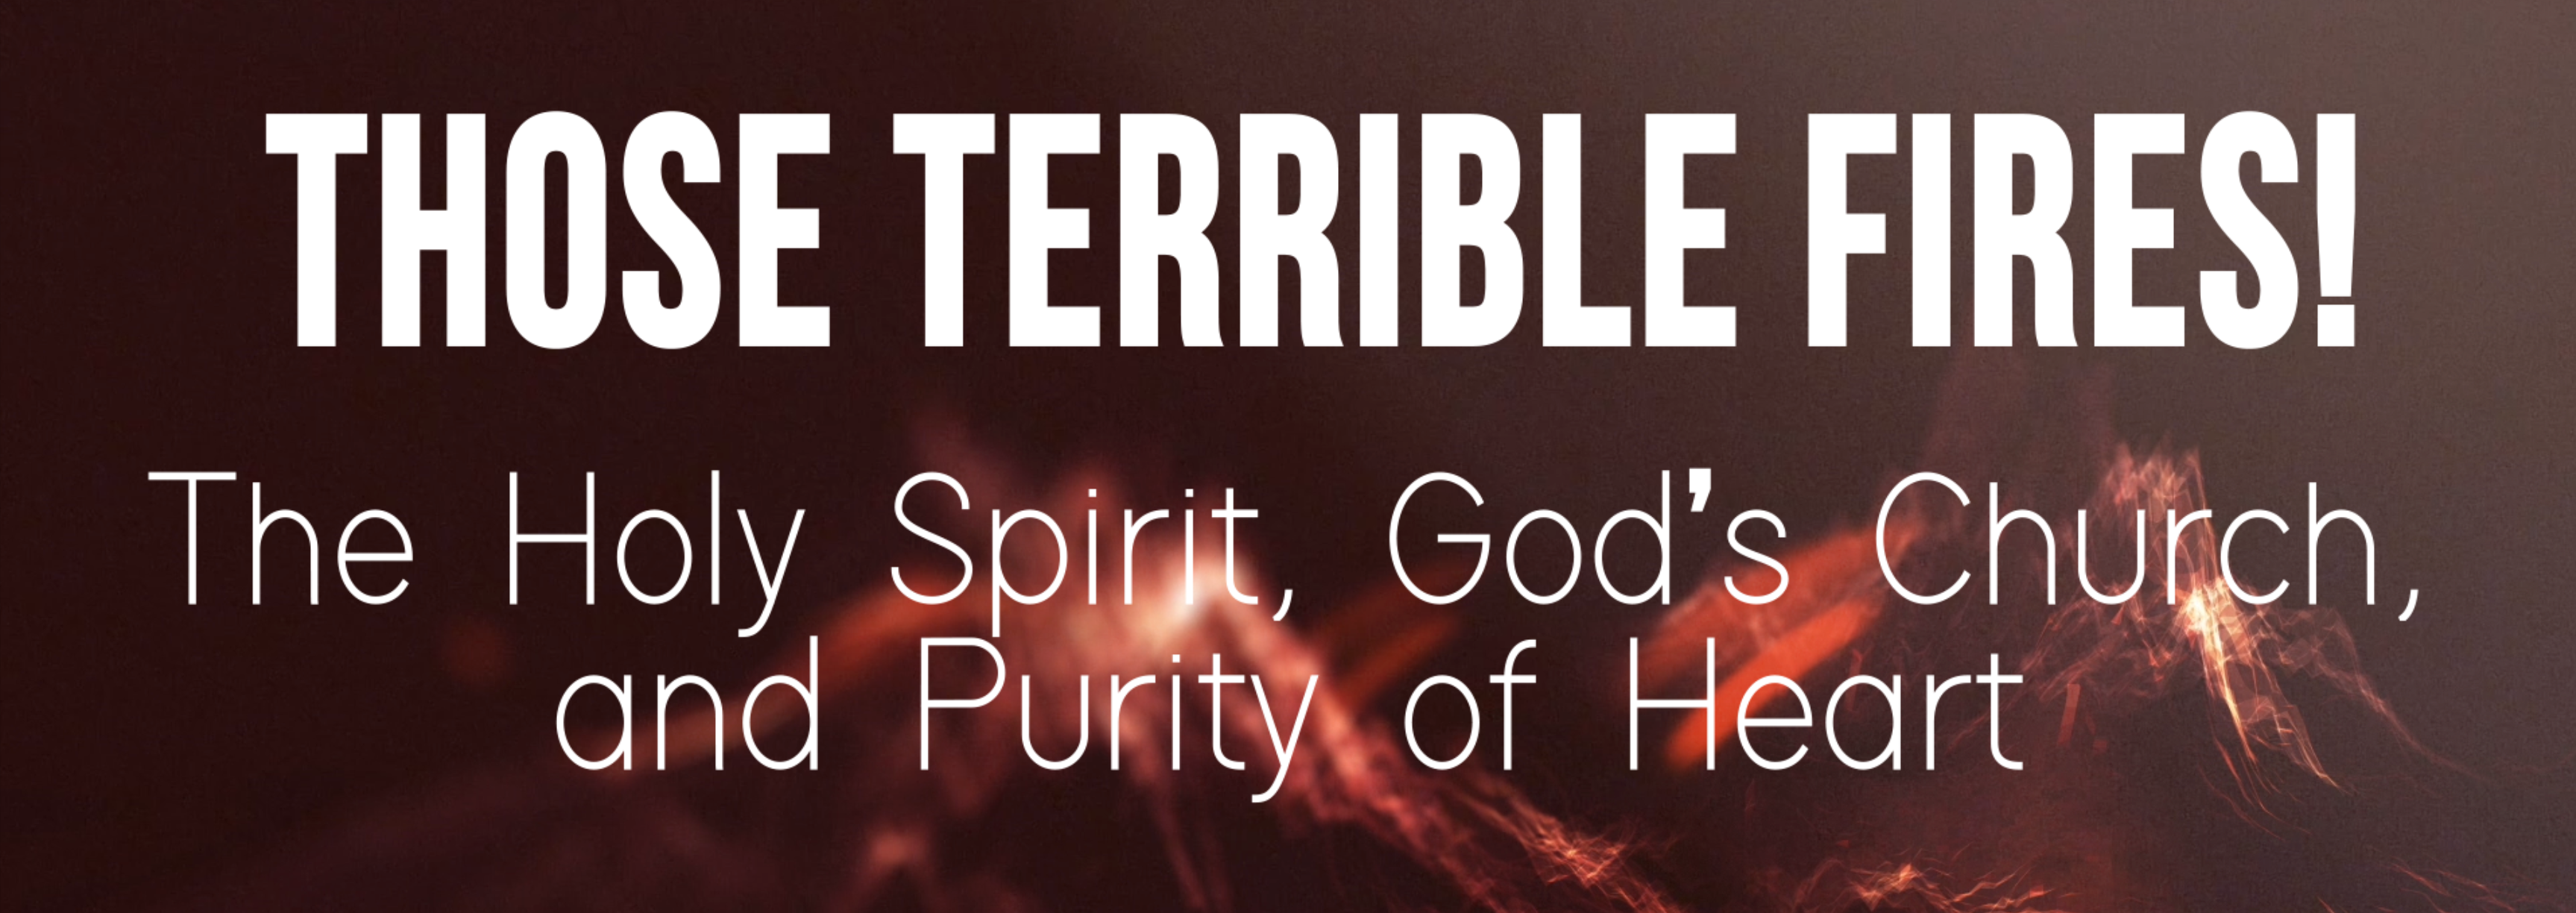 We Are Equipped to Serve God's Purposes of Redemption for His World